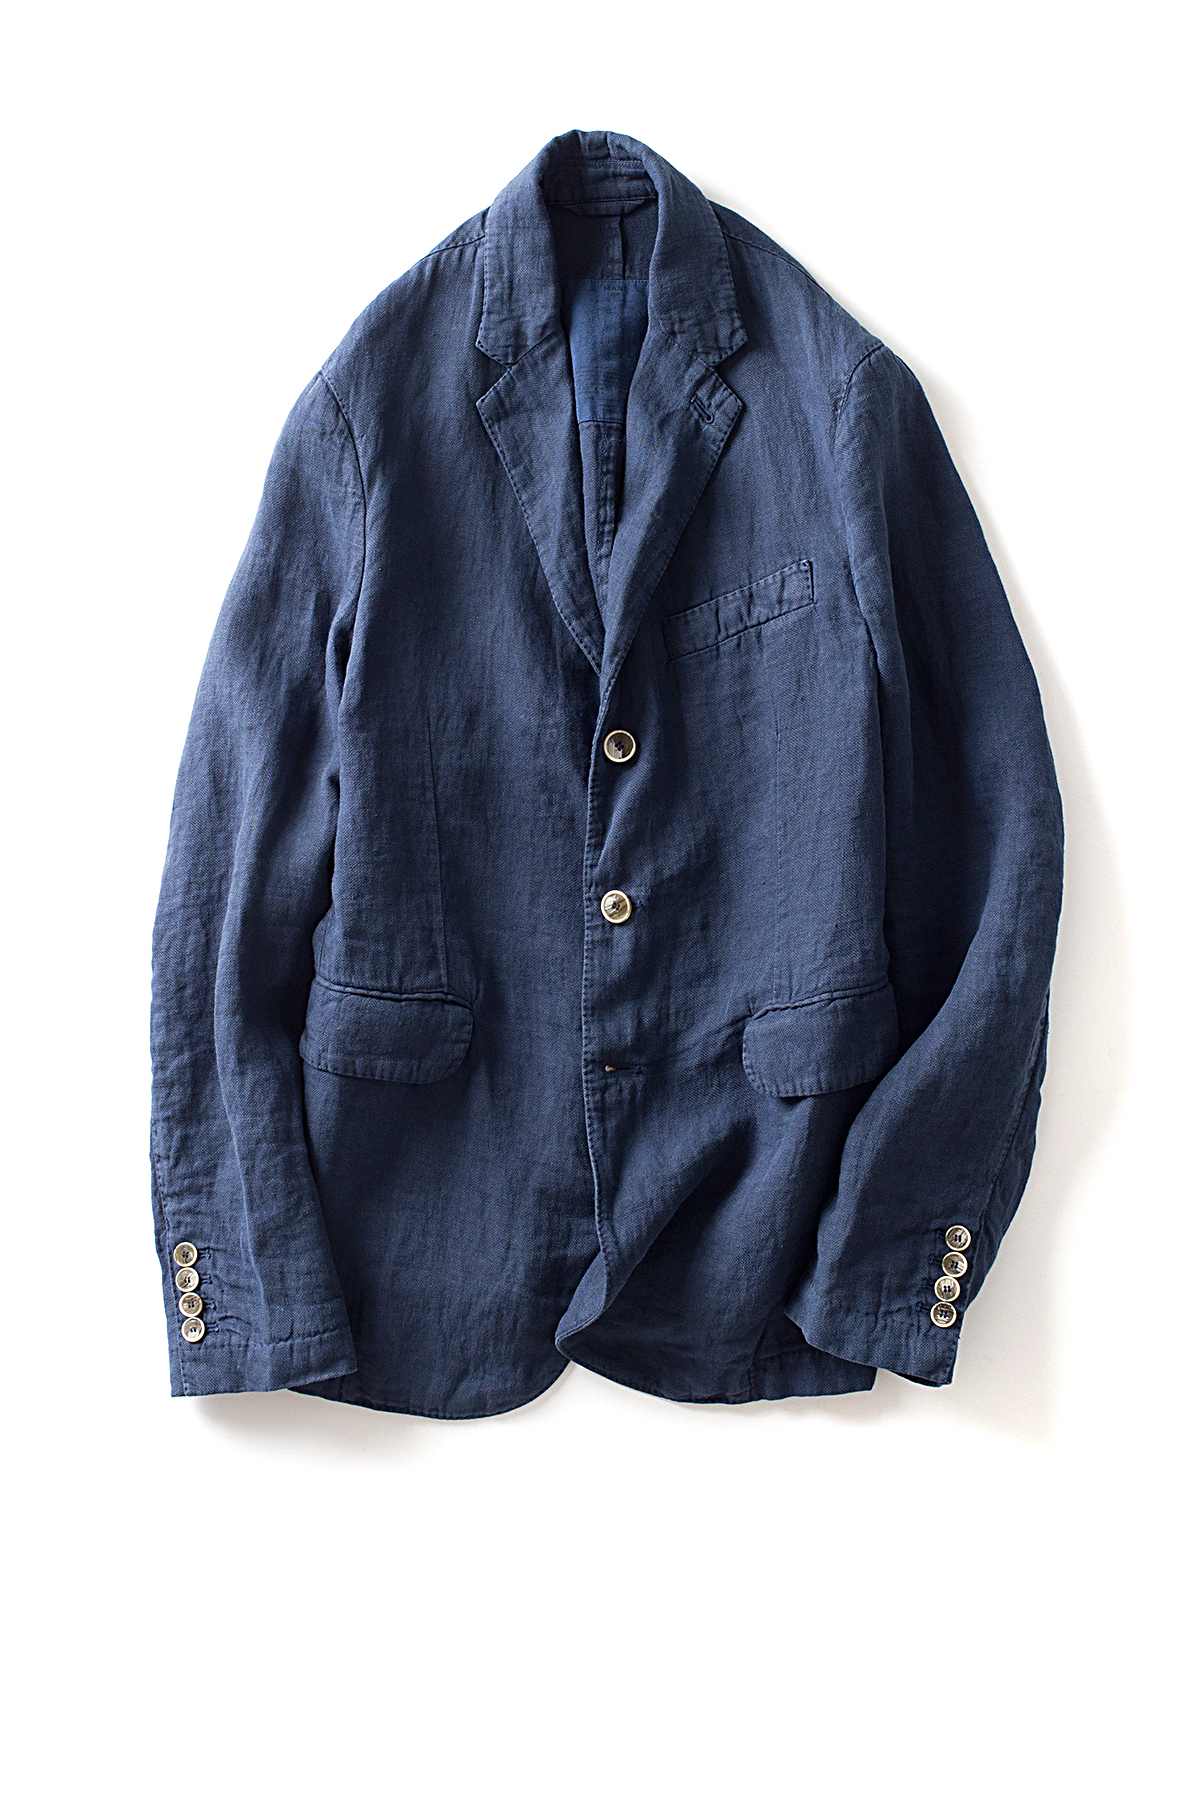 MAN 1924 : Kennedy Blazer (Navy)